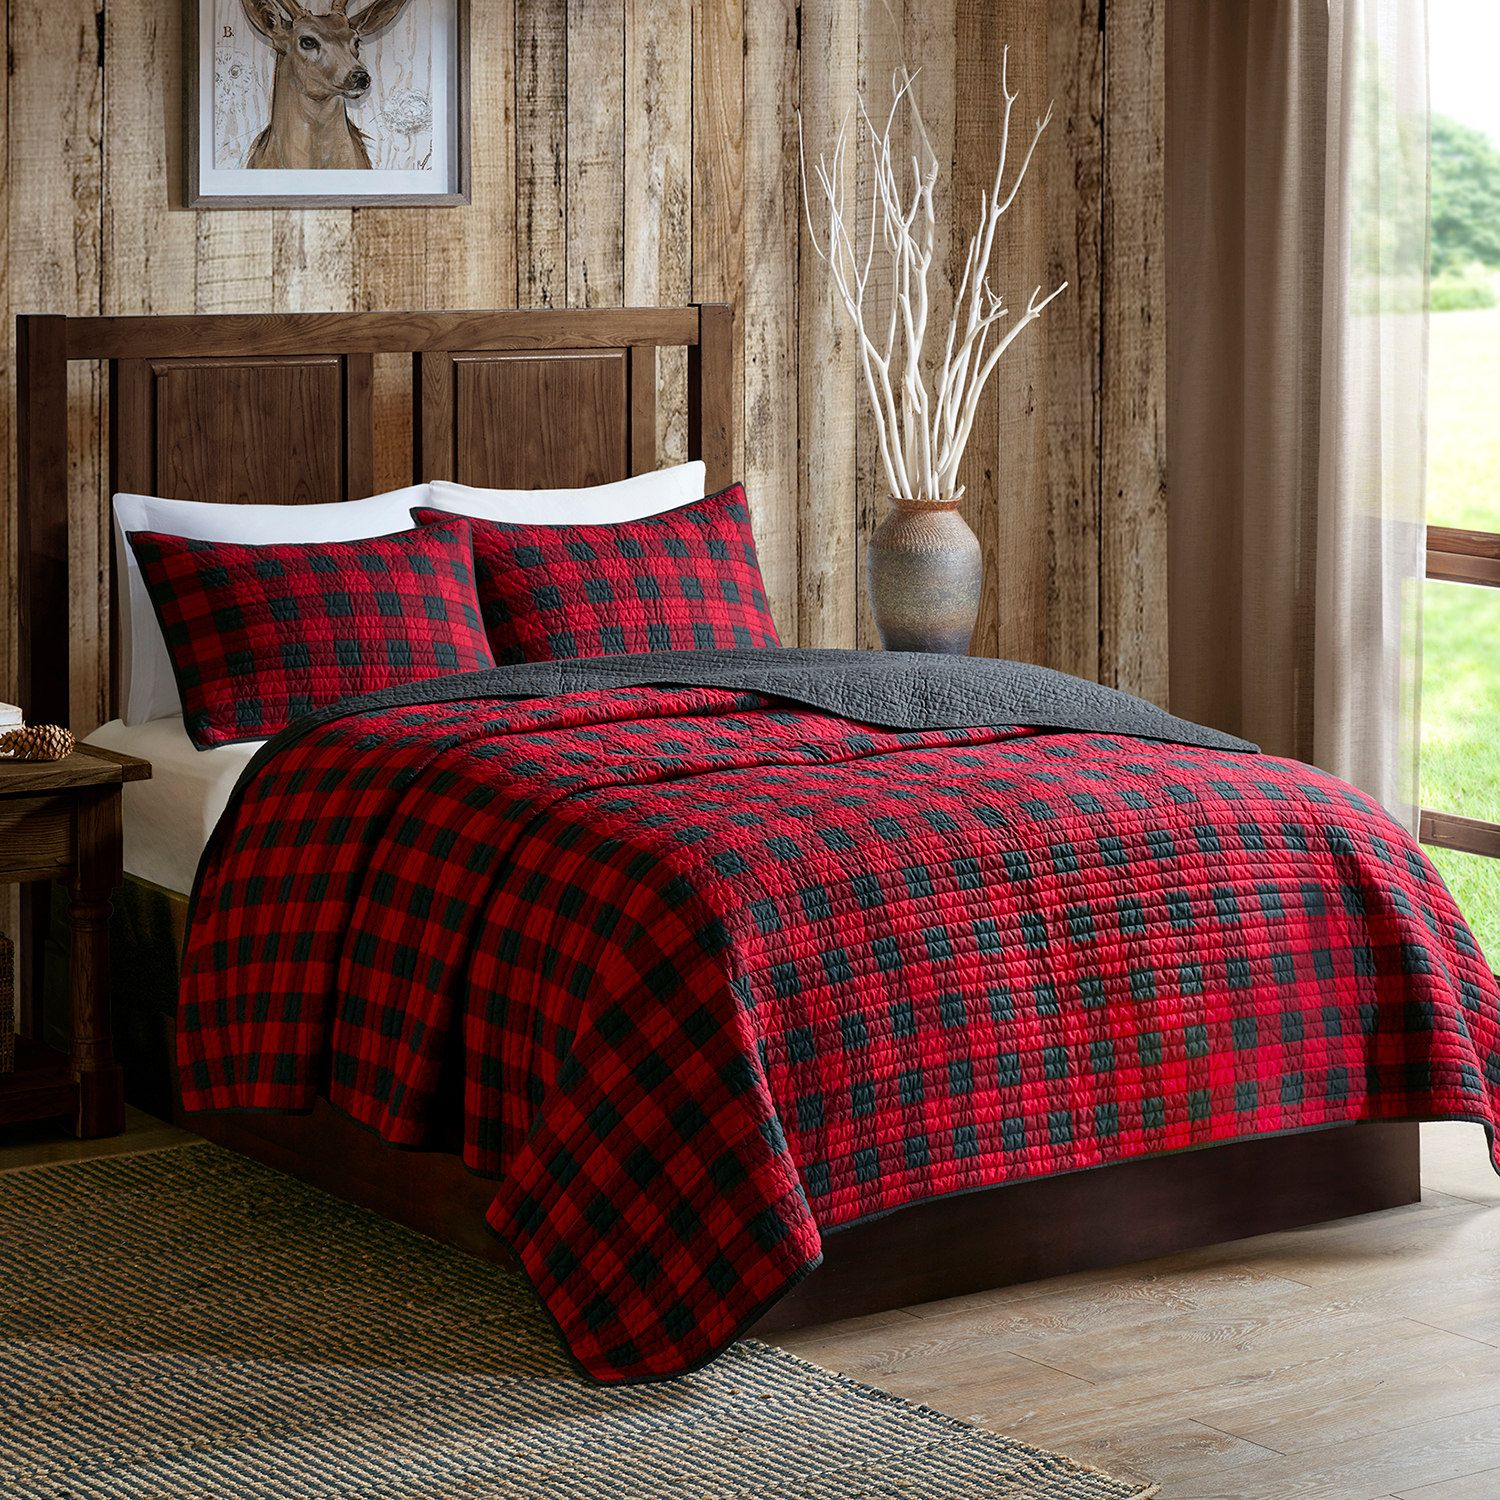 Woolrich 3 Piece Buffalo Check Quilt Set In 2020 Quilt Sets